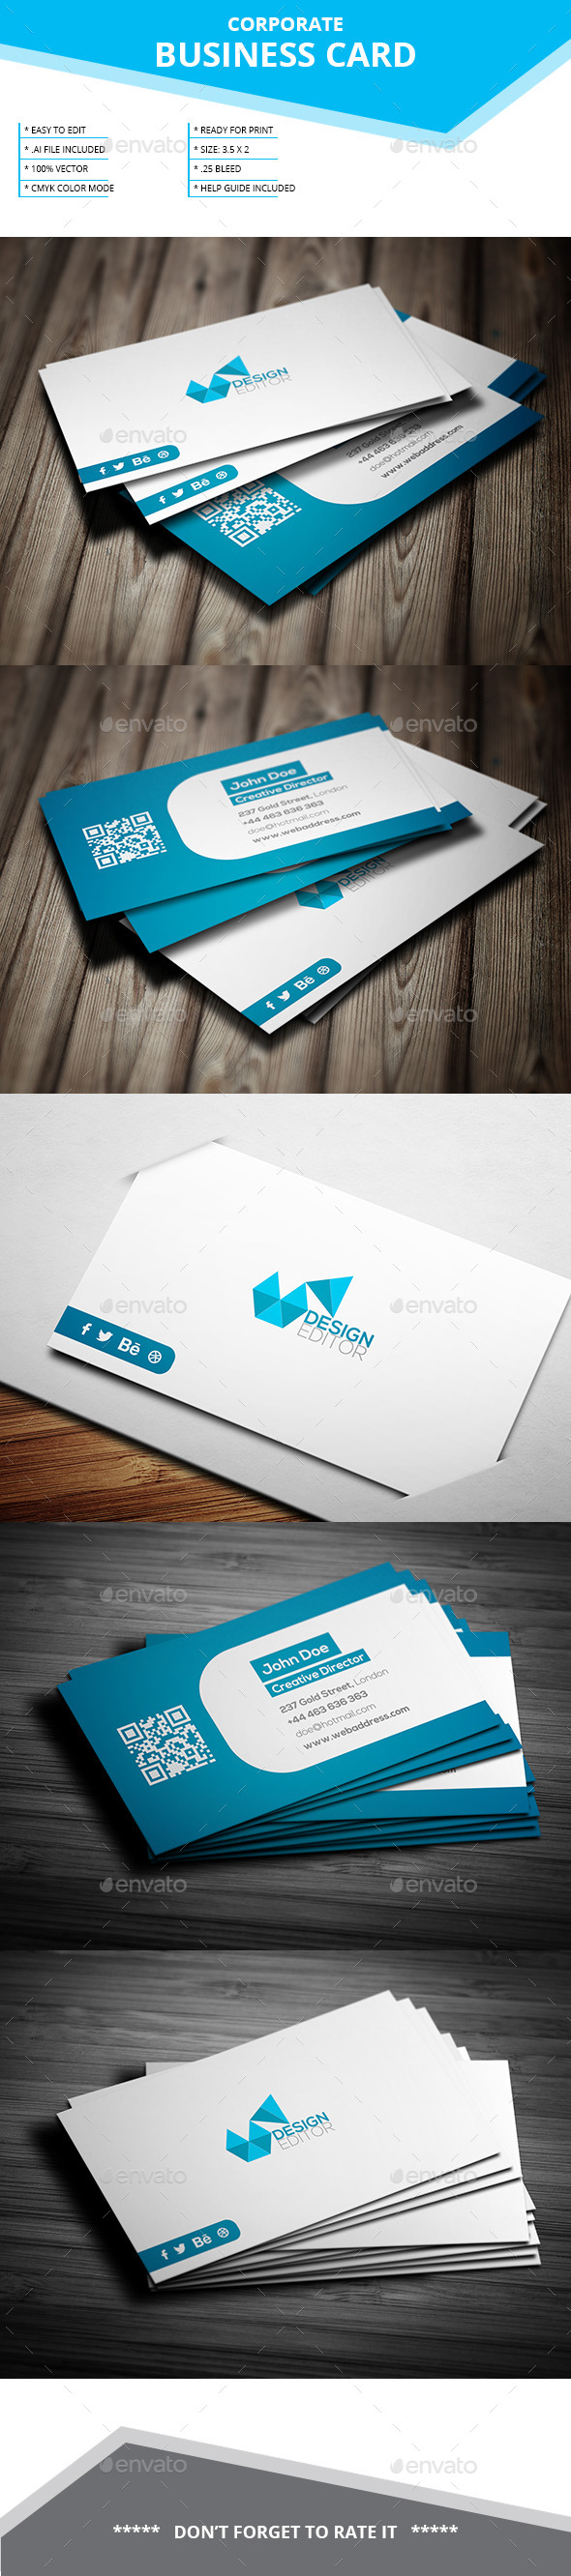 Corporate Business Card _ SL-19 - Business Cards Print Templates